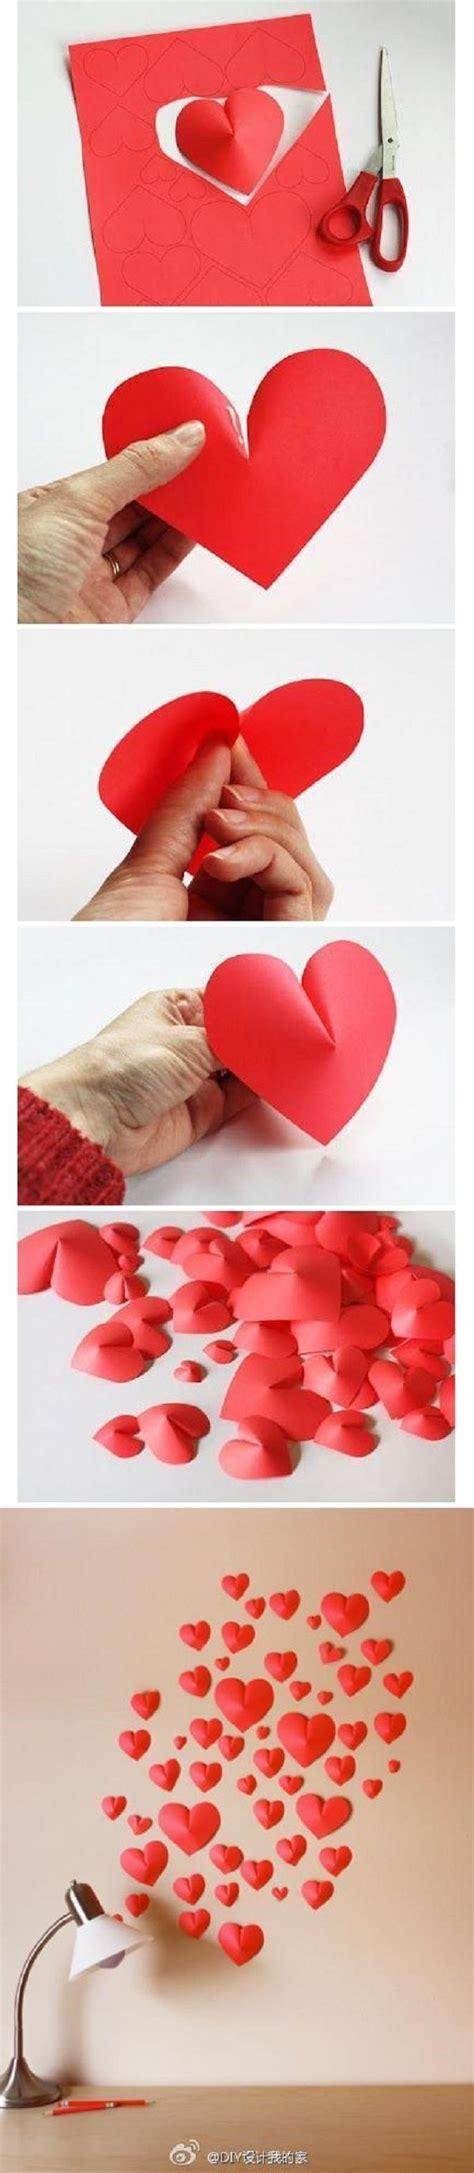 Paper Hearts Crafts - diy easy 3d paper craft ideas paper